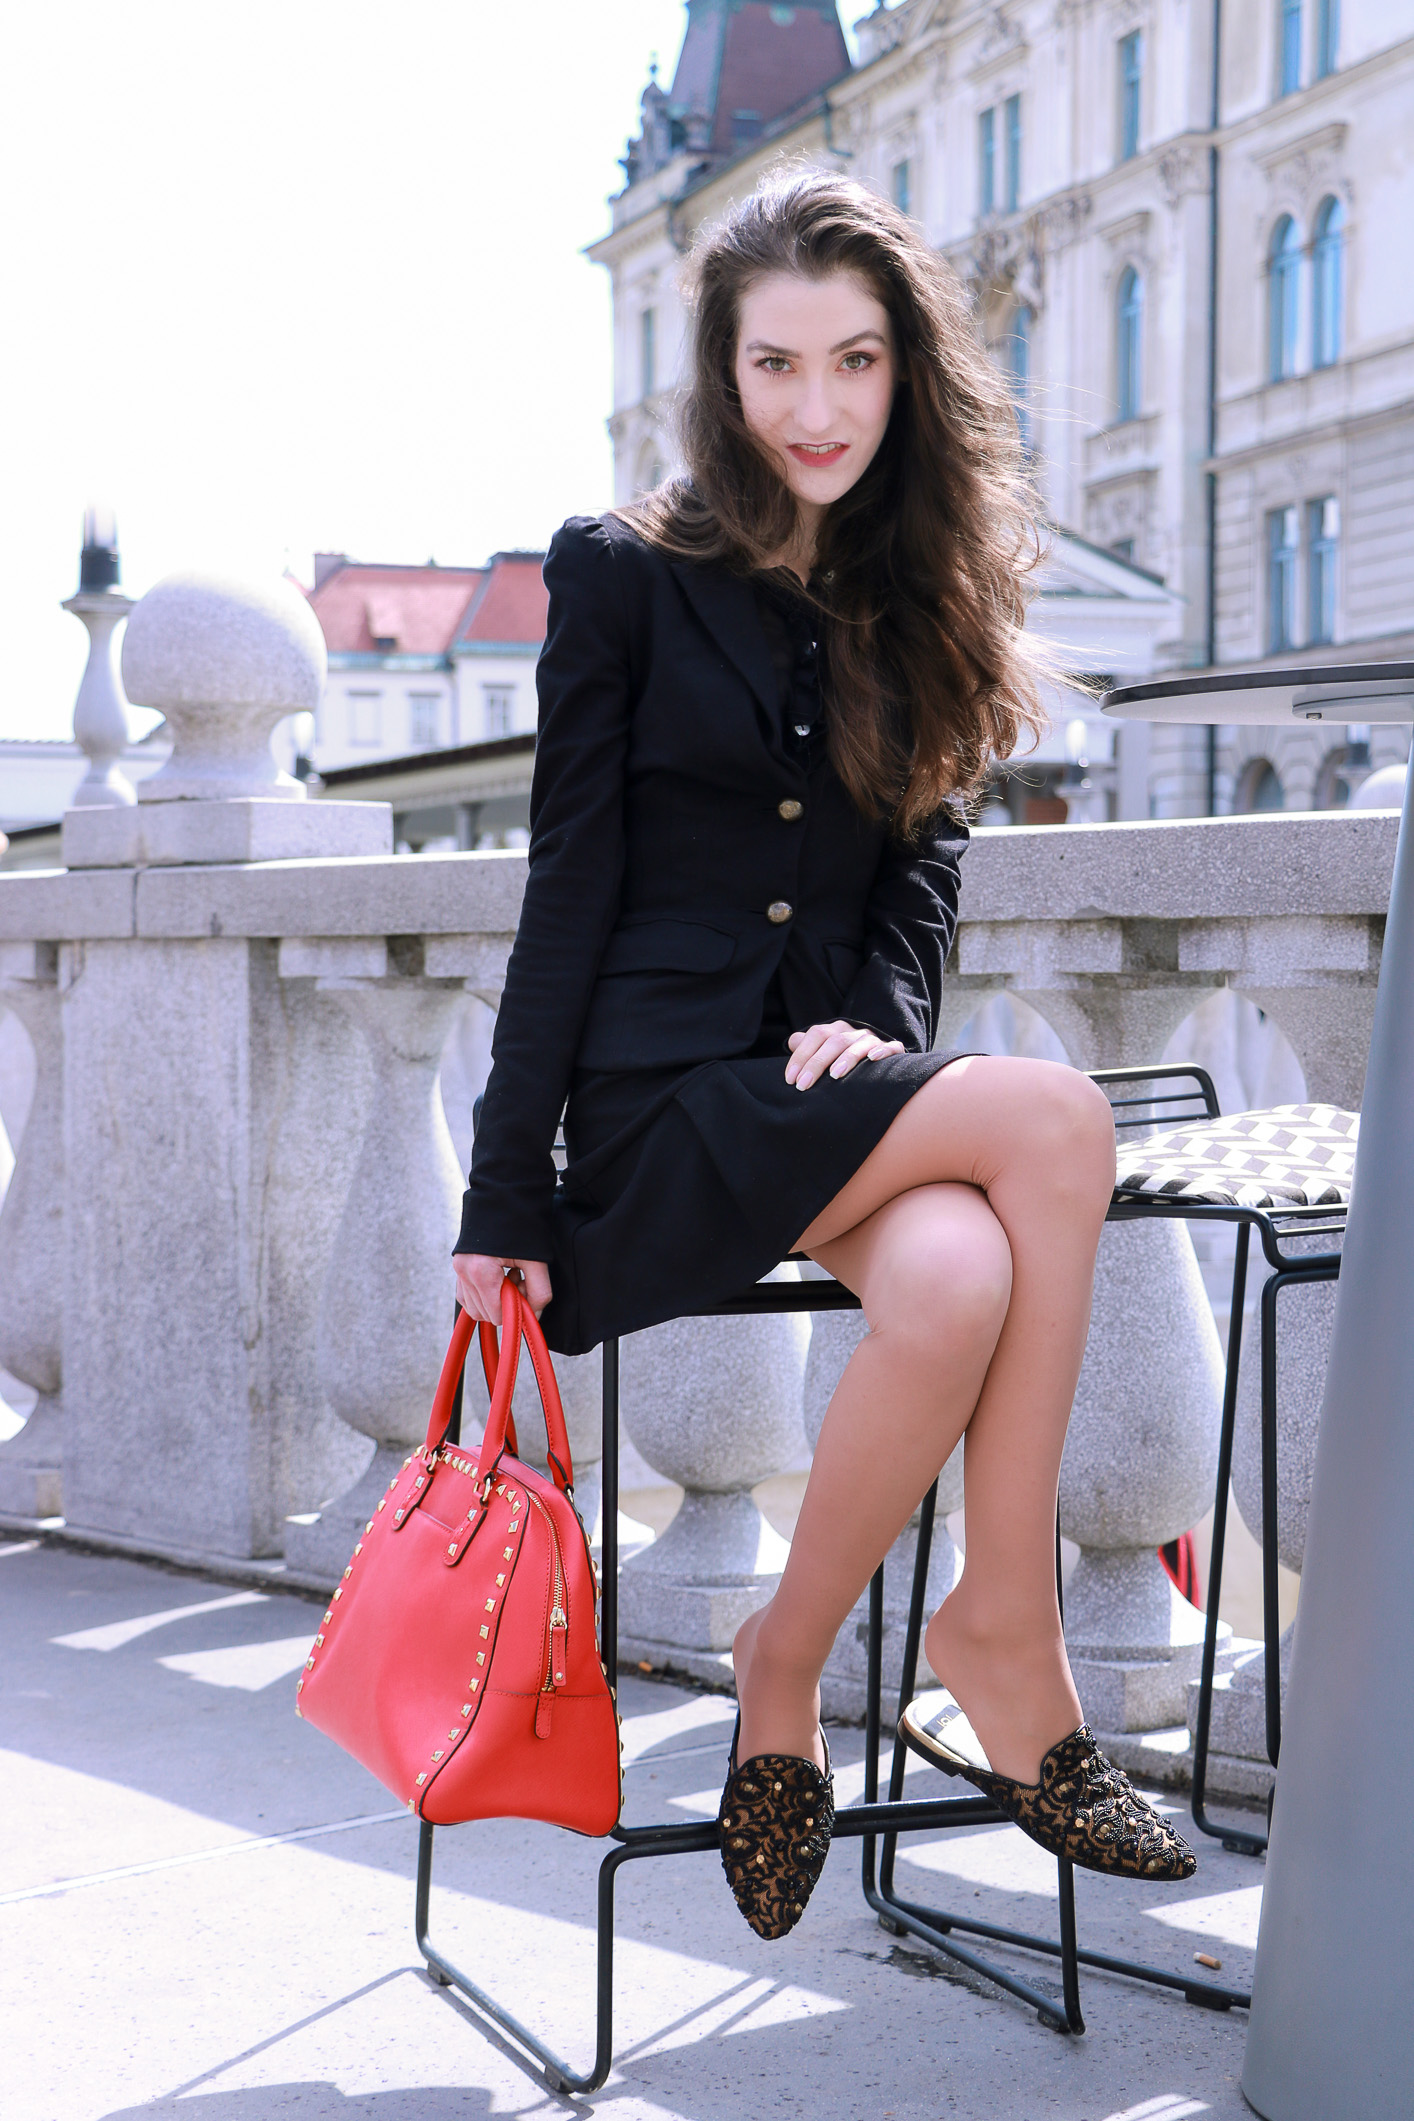 Fashion blogger Veronika Lipar of Brunette From Wall Street sharing fashionable business casual style in pinched blazer and mini skirt